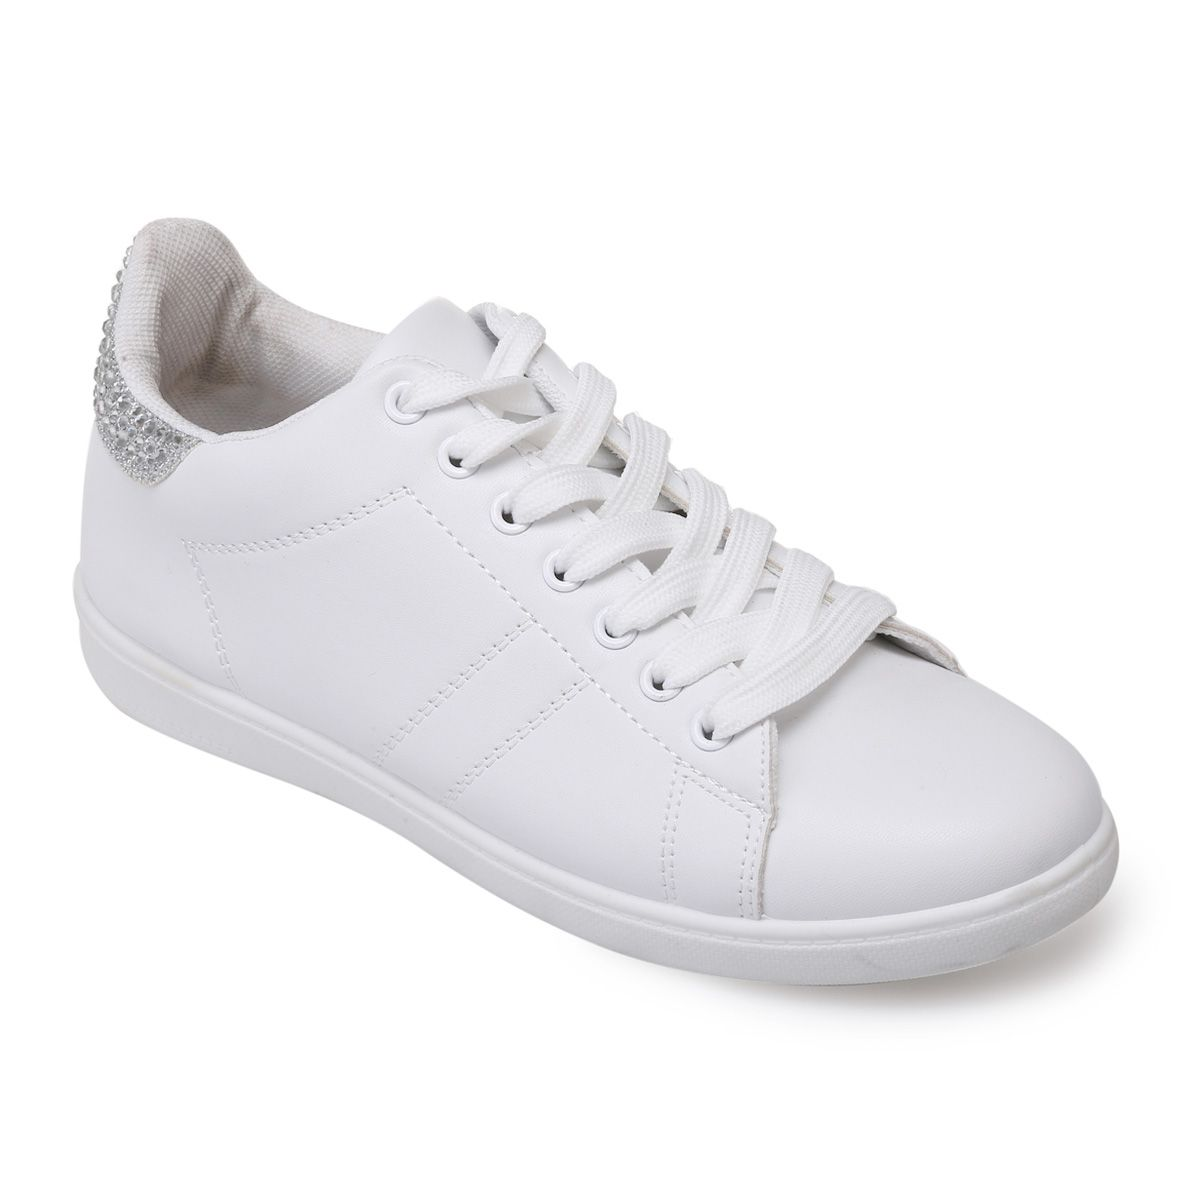 chaussures blanches femme